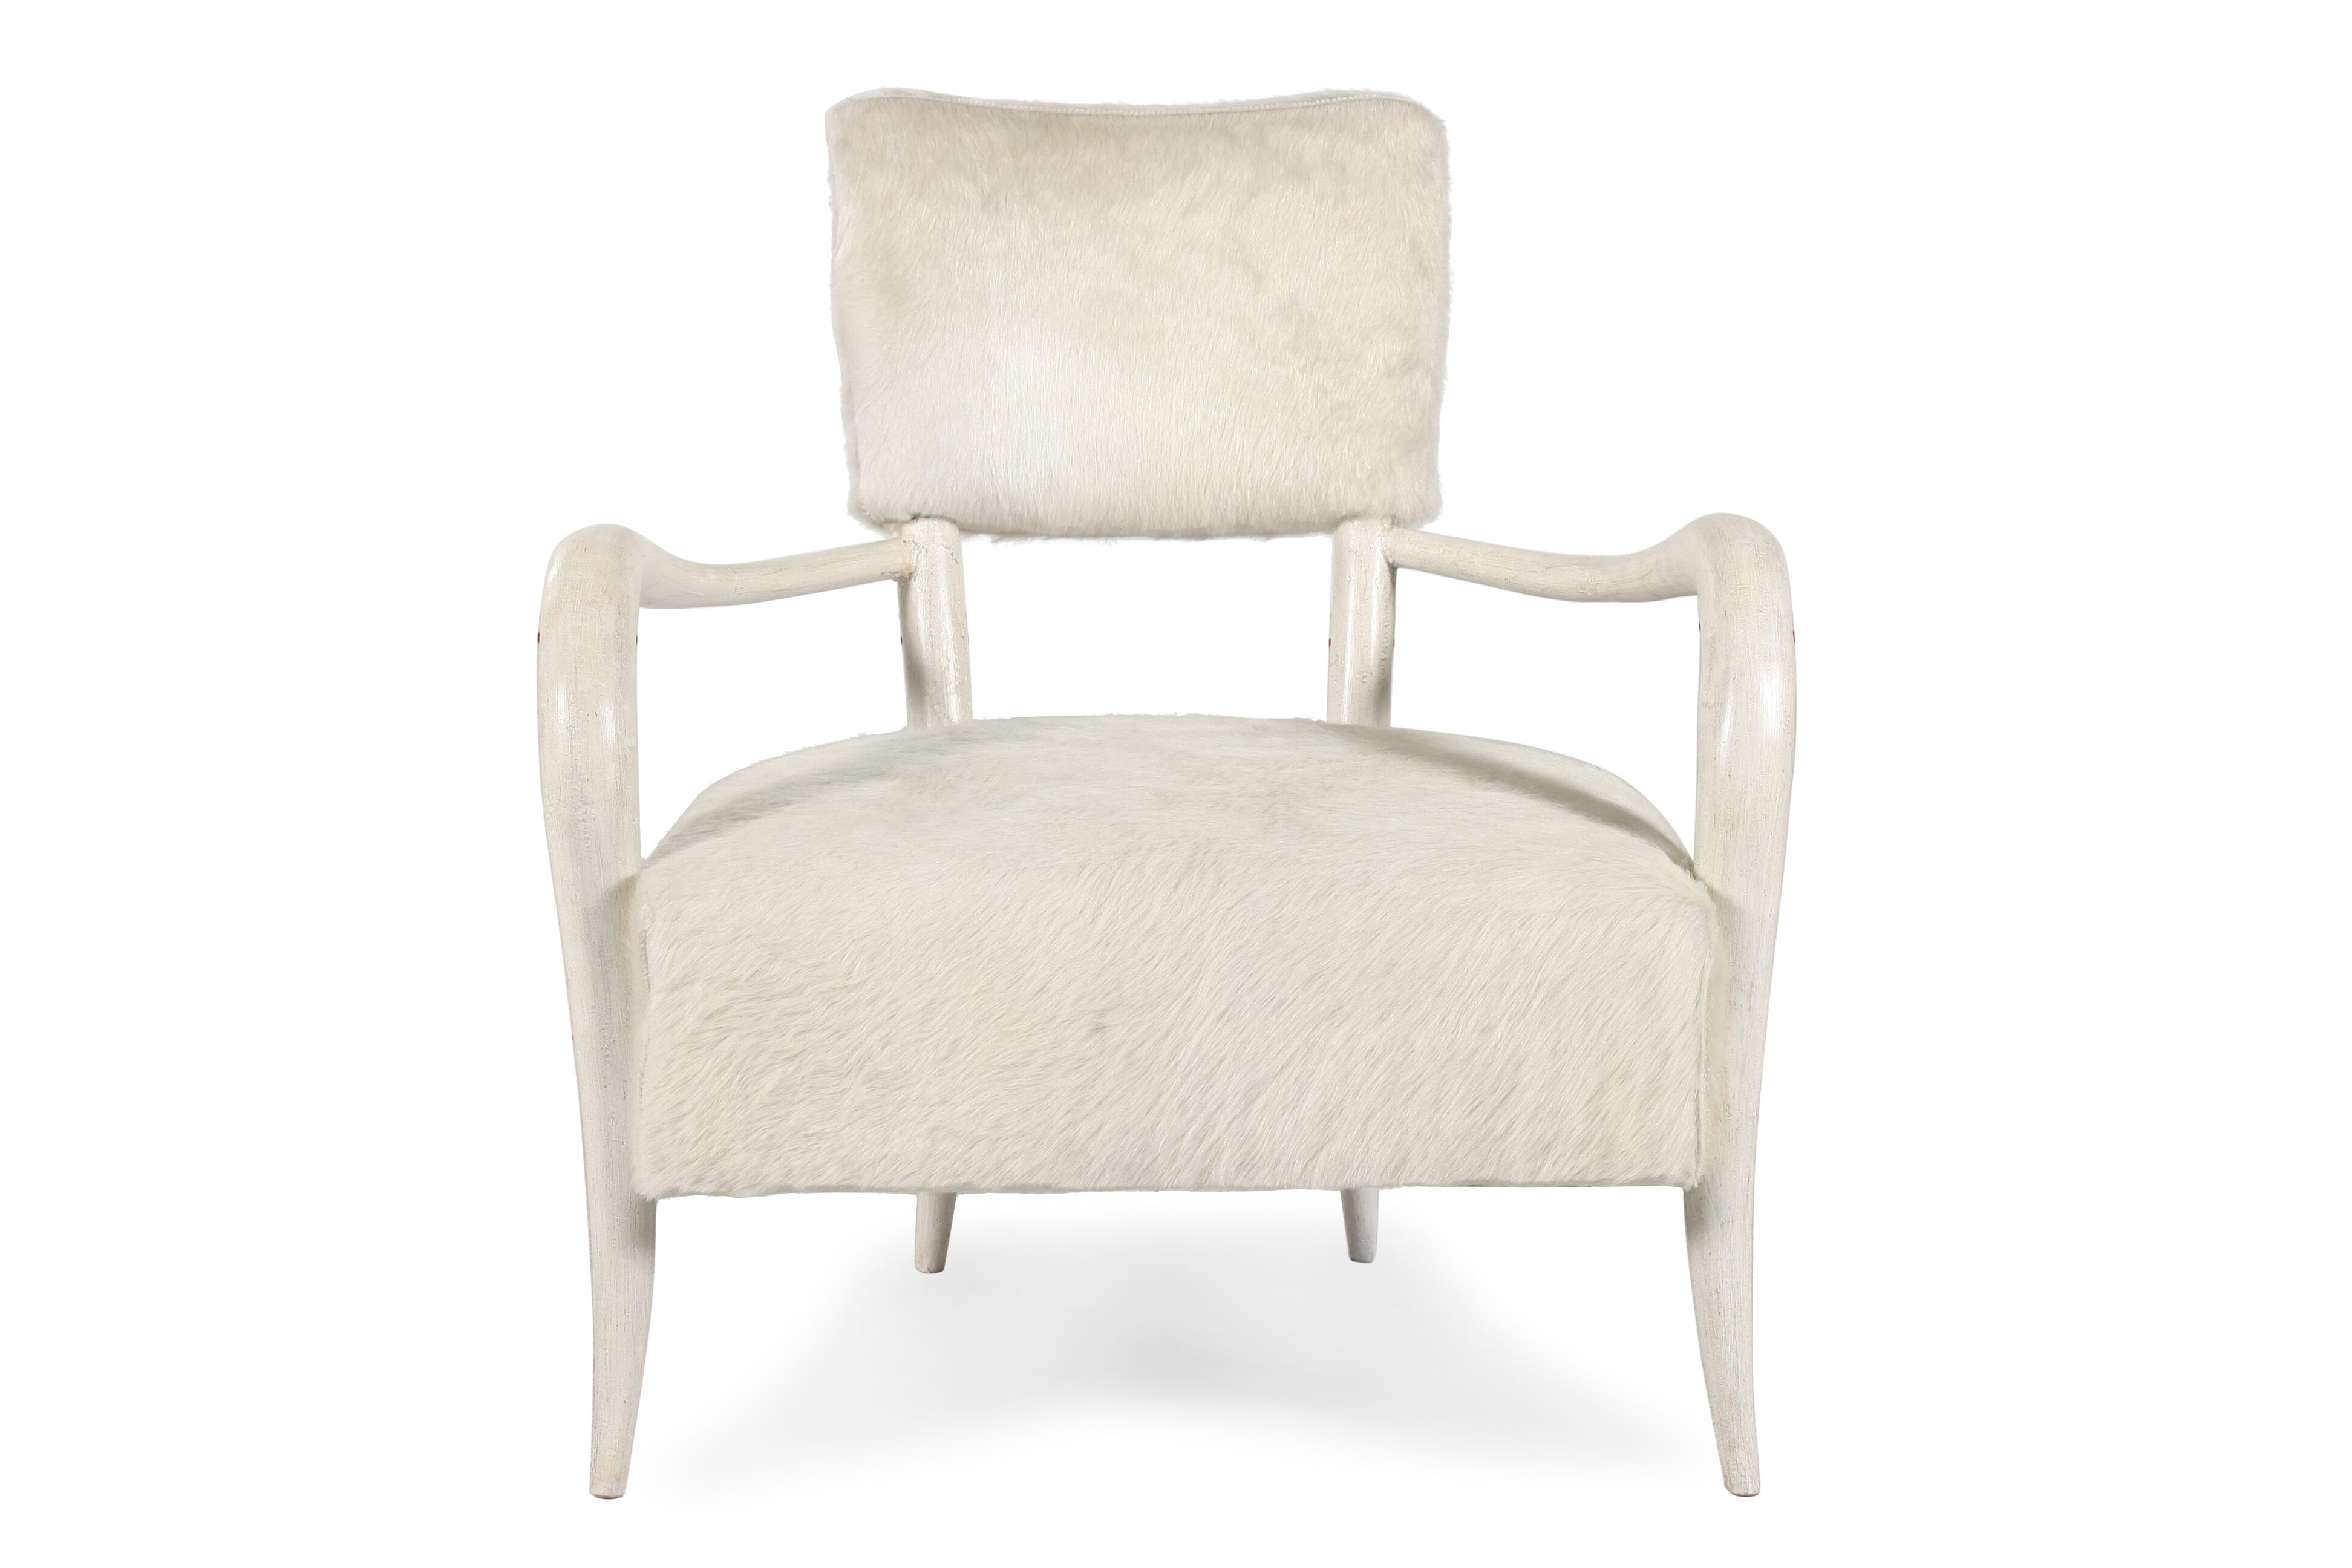 Bernhardt Elka Leather Chair  Mathis Brothers Furniture